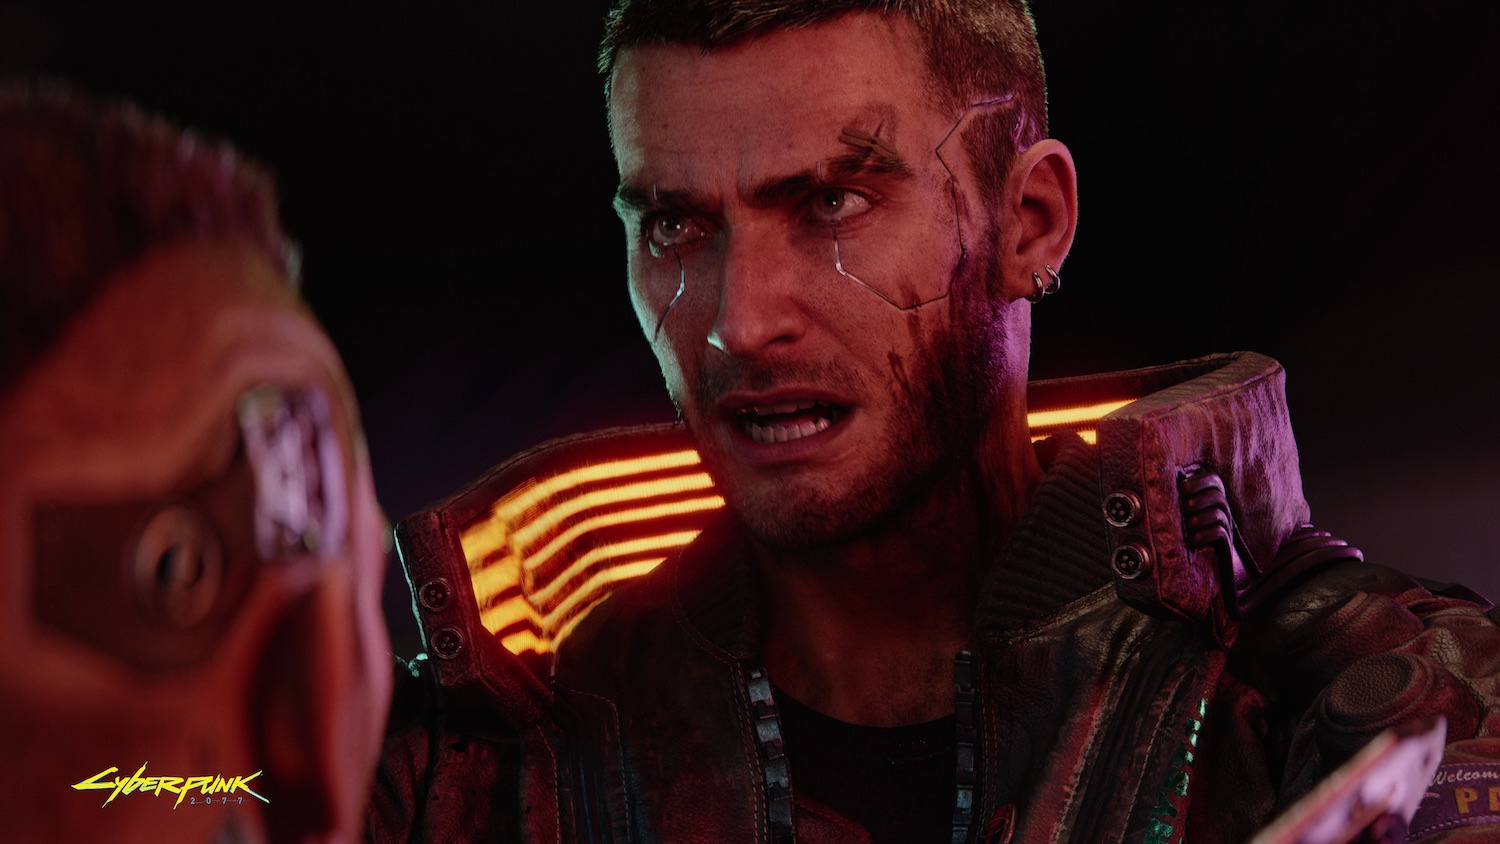 Cyberpunk 2077 Players Might Be Able to Create Trans or Nonbinary Characters